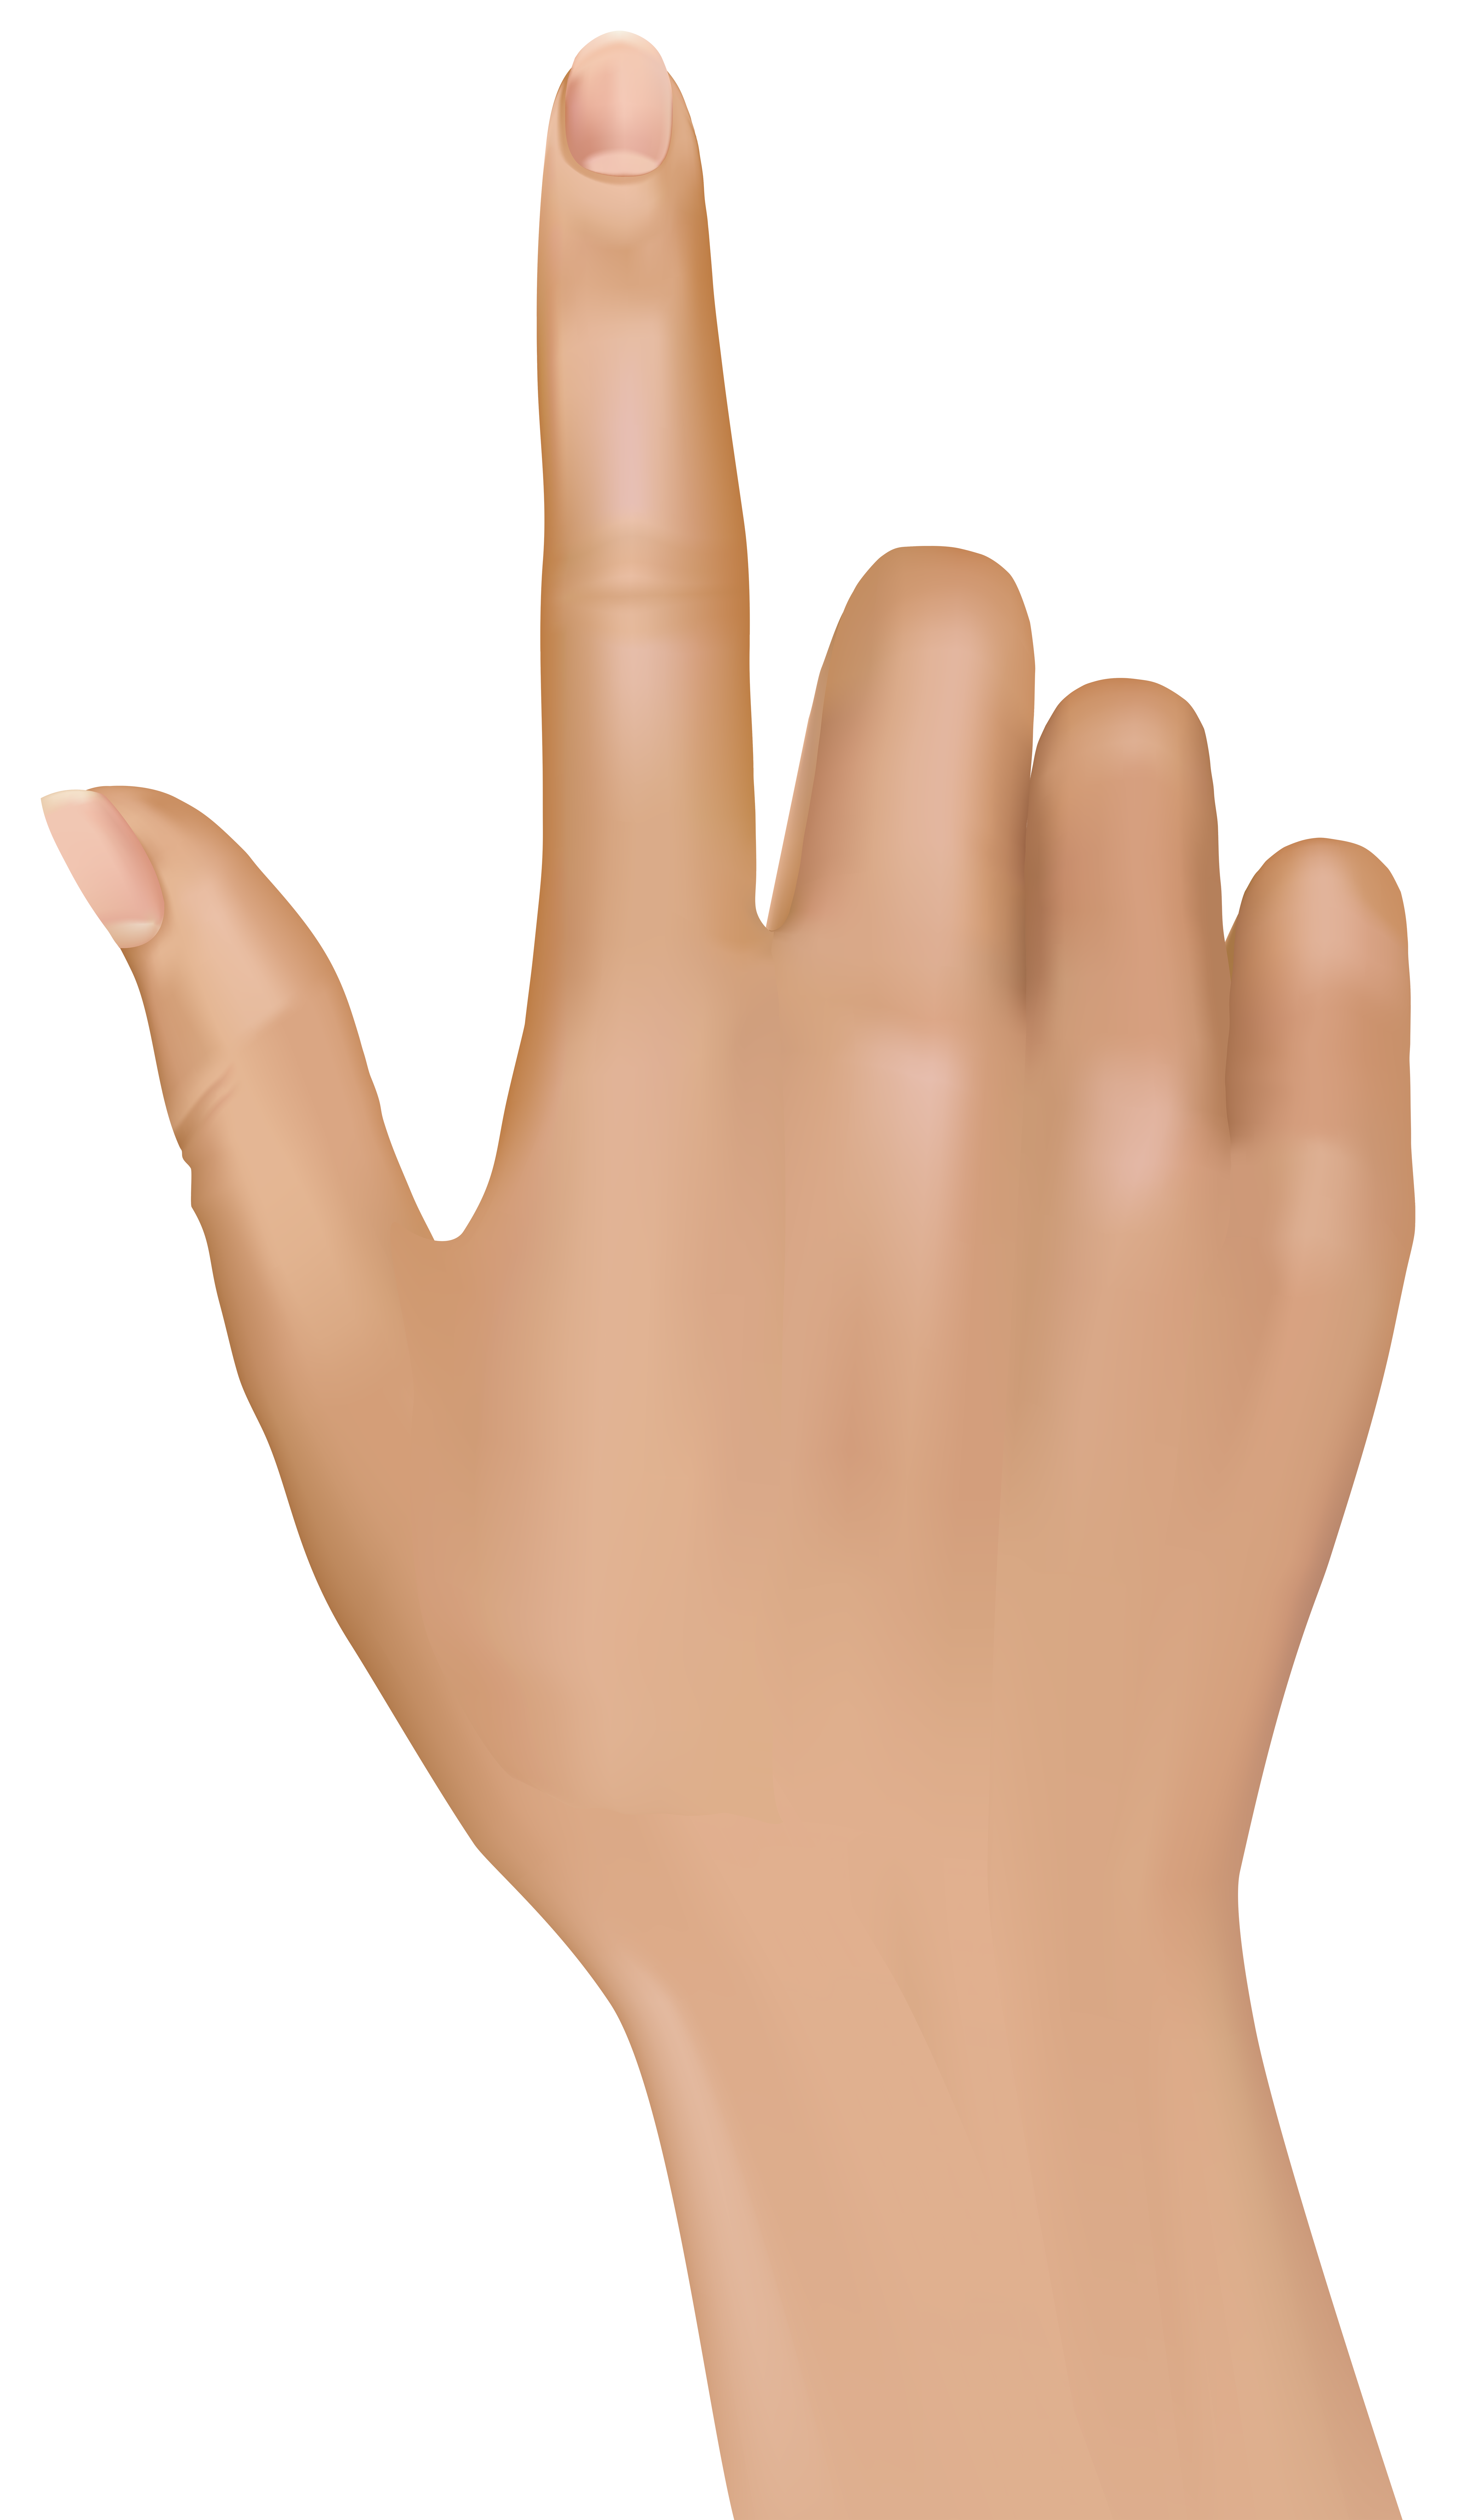 tuching finger hand clip best clipart #8646